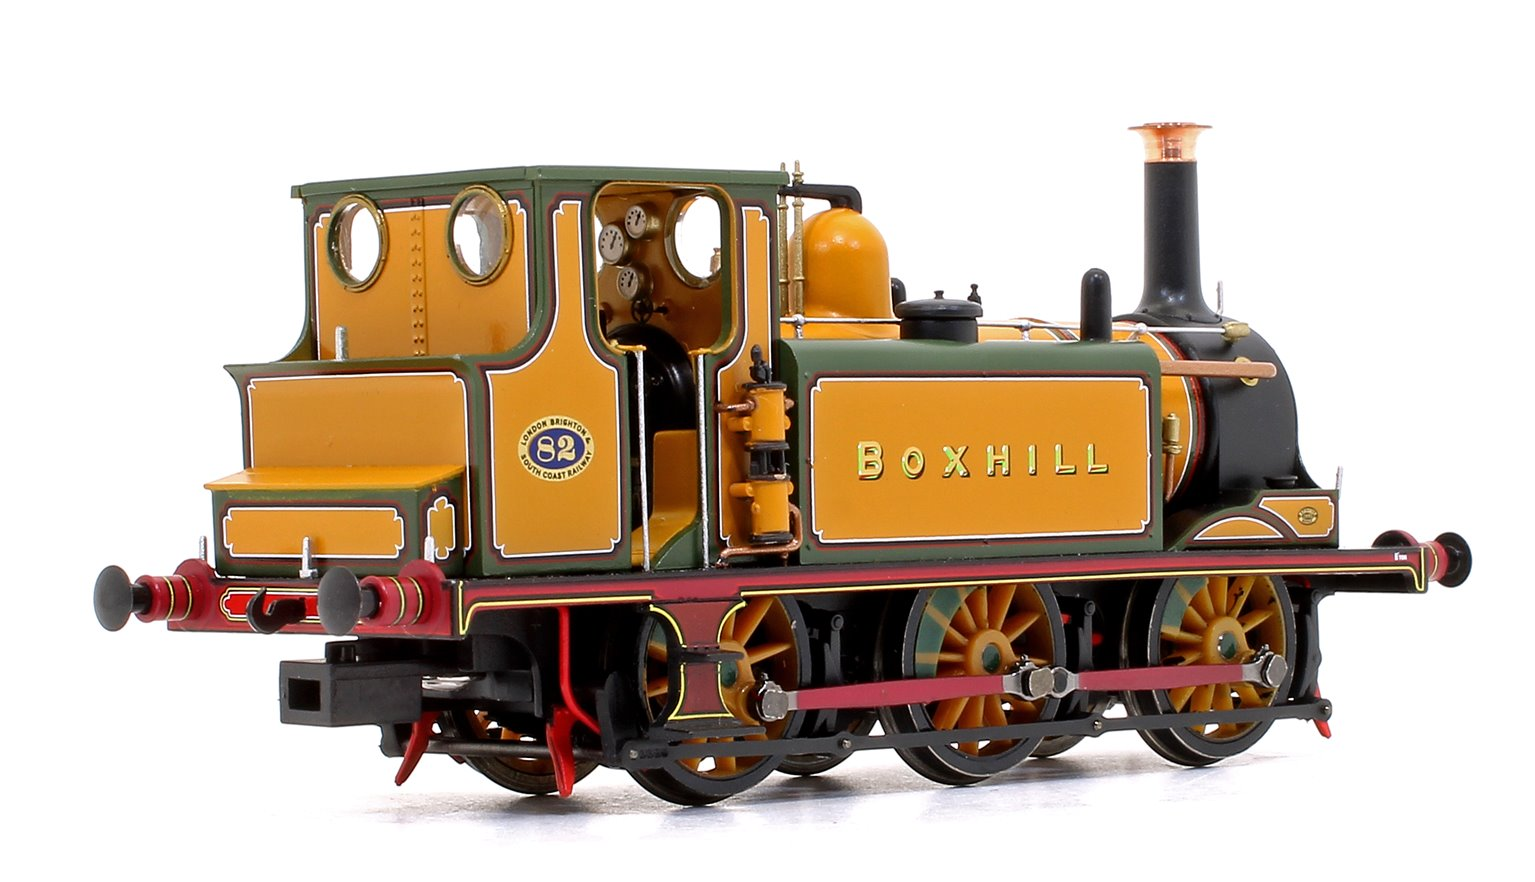 Stroudley Terrier A1 Class 'Boxhill' Improved Engine Green 0-6-0 Tank Locomotive No.82 DCC Fitted